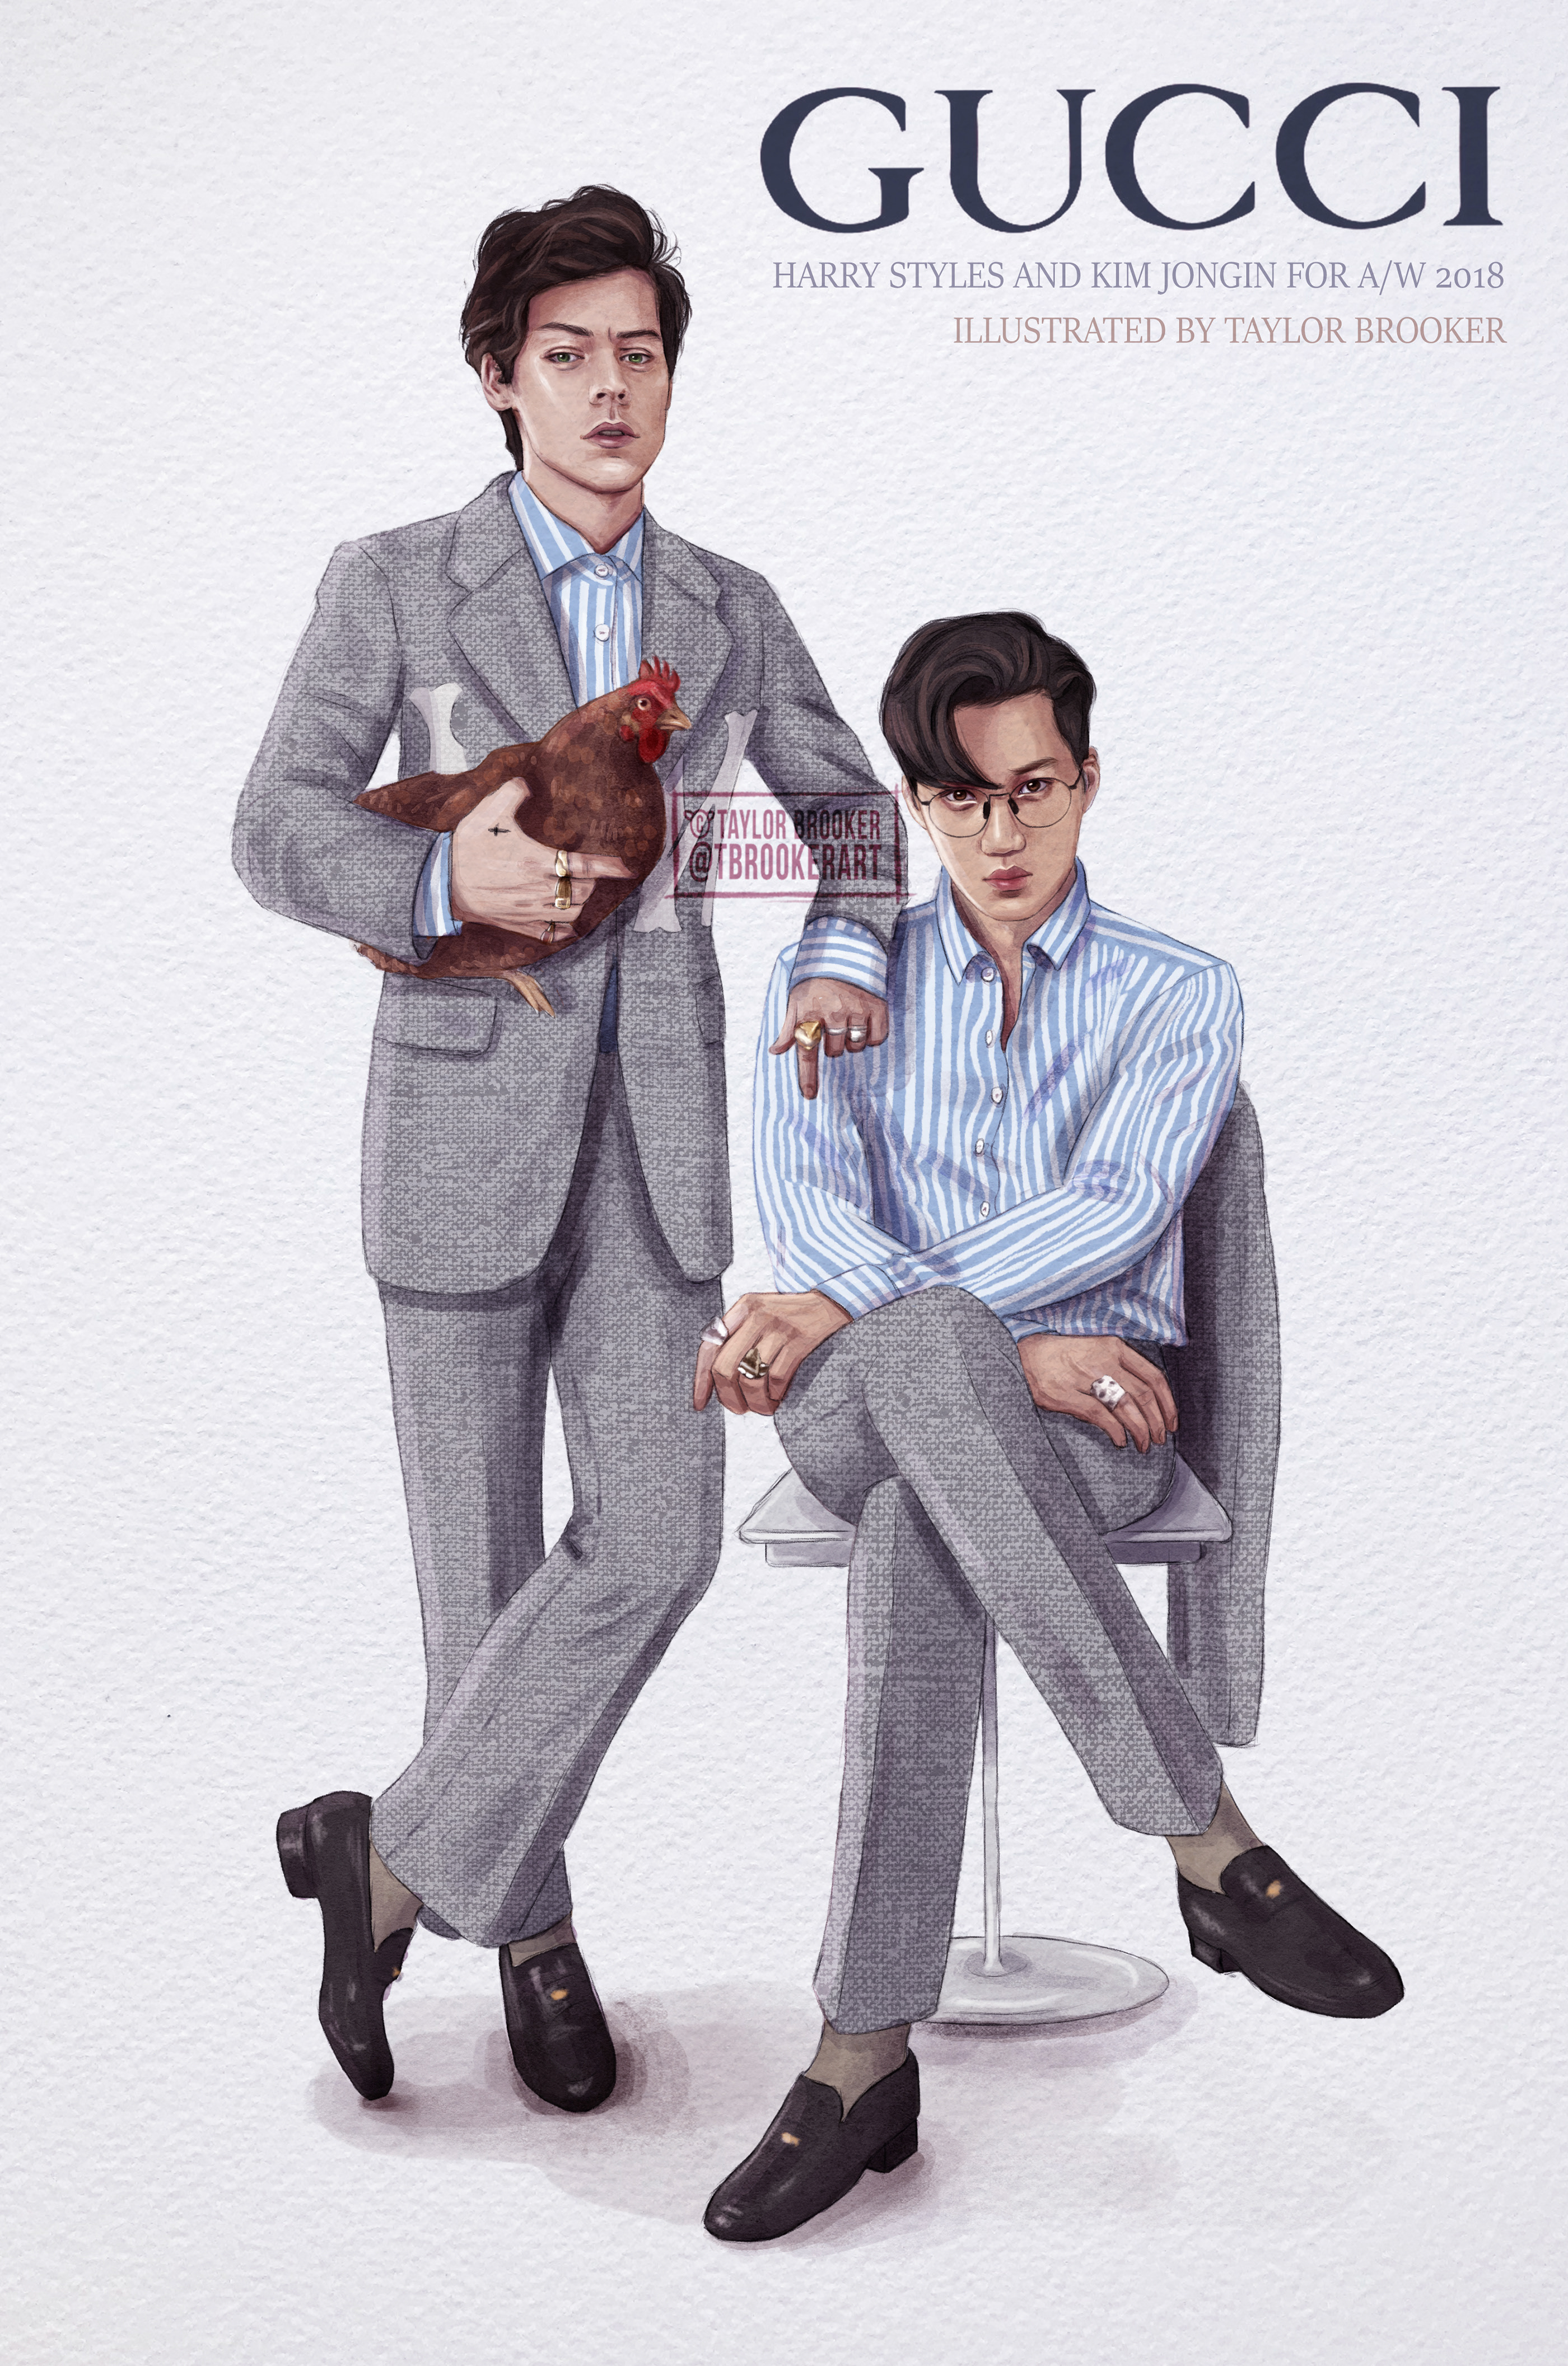 Harry Styles And Exo S Kai For Gucci A W 2018 On Behance